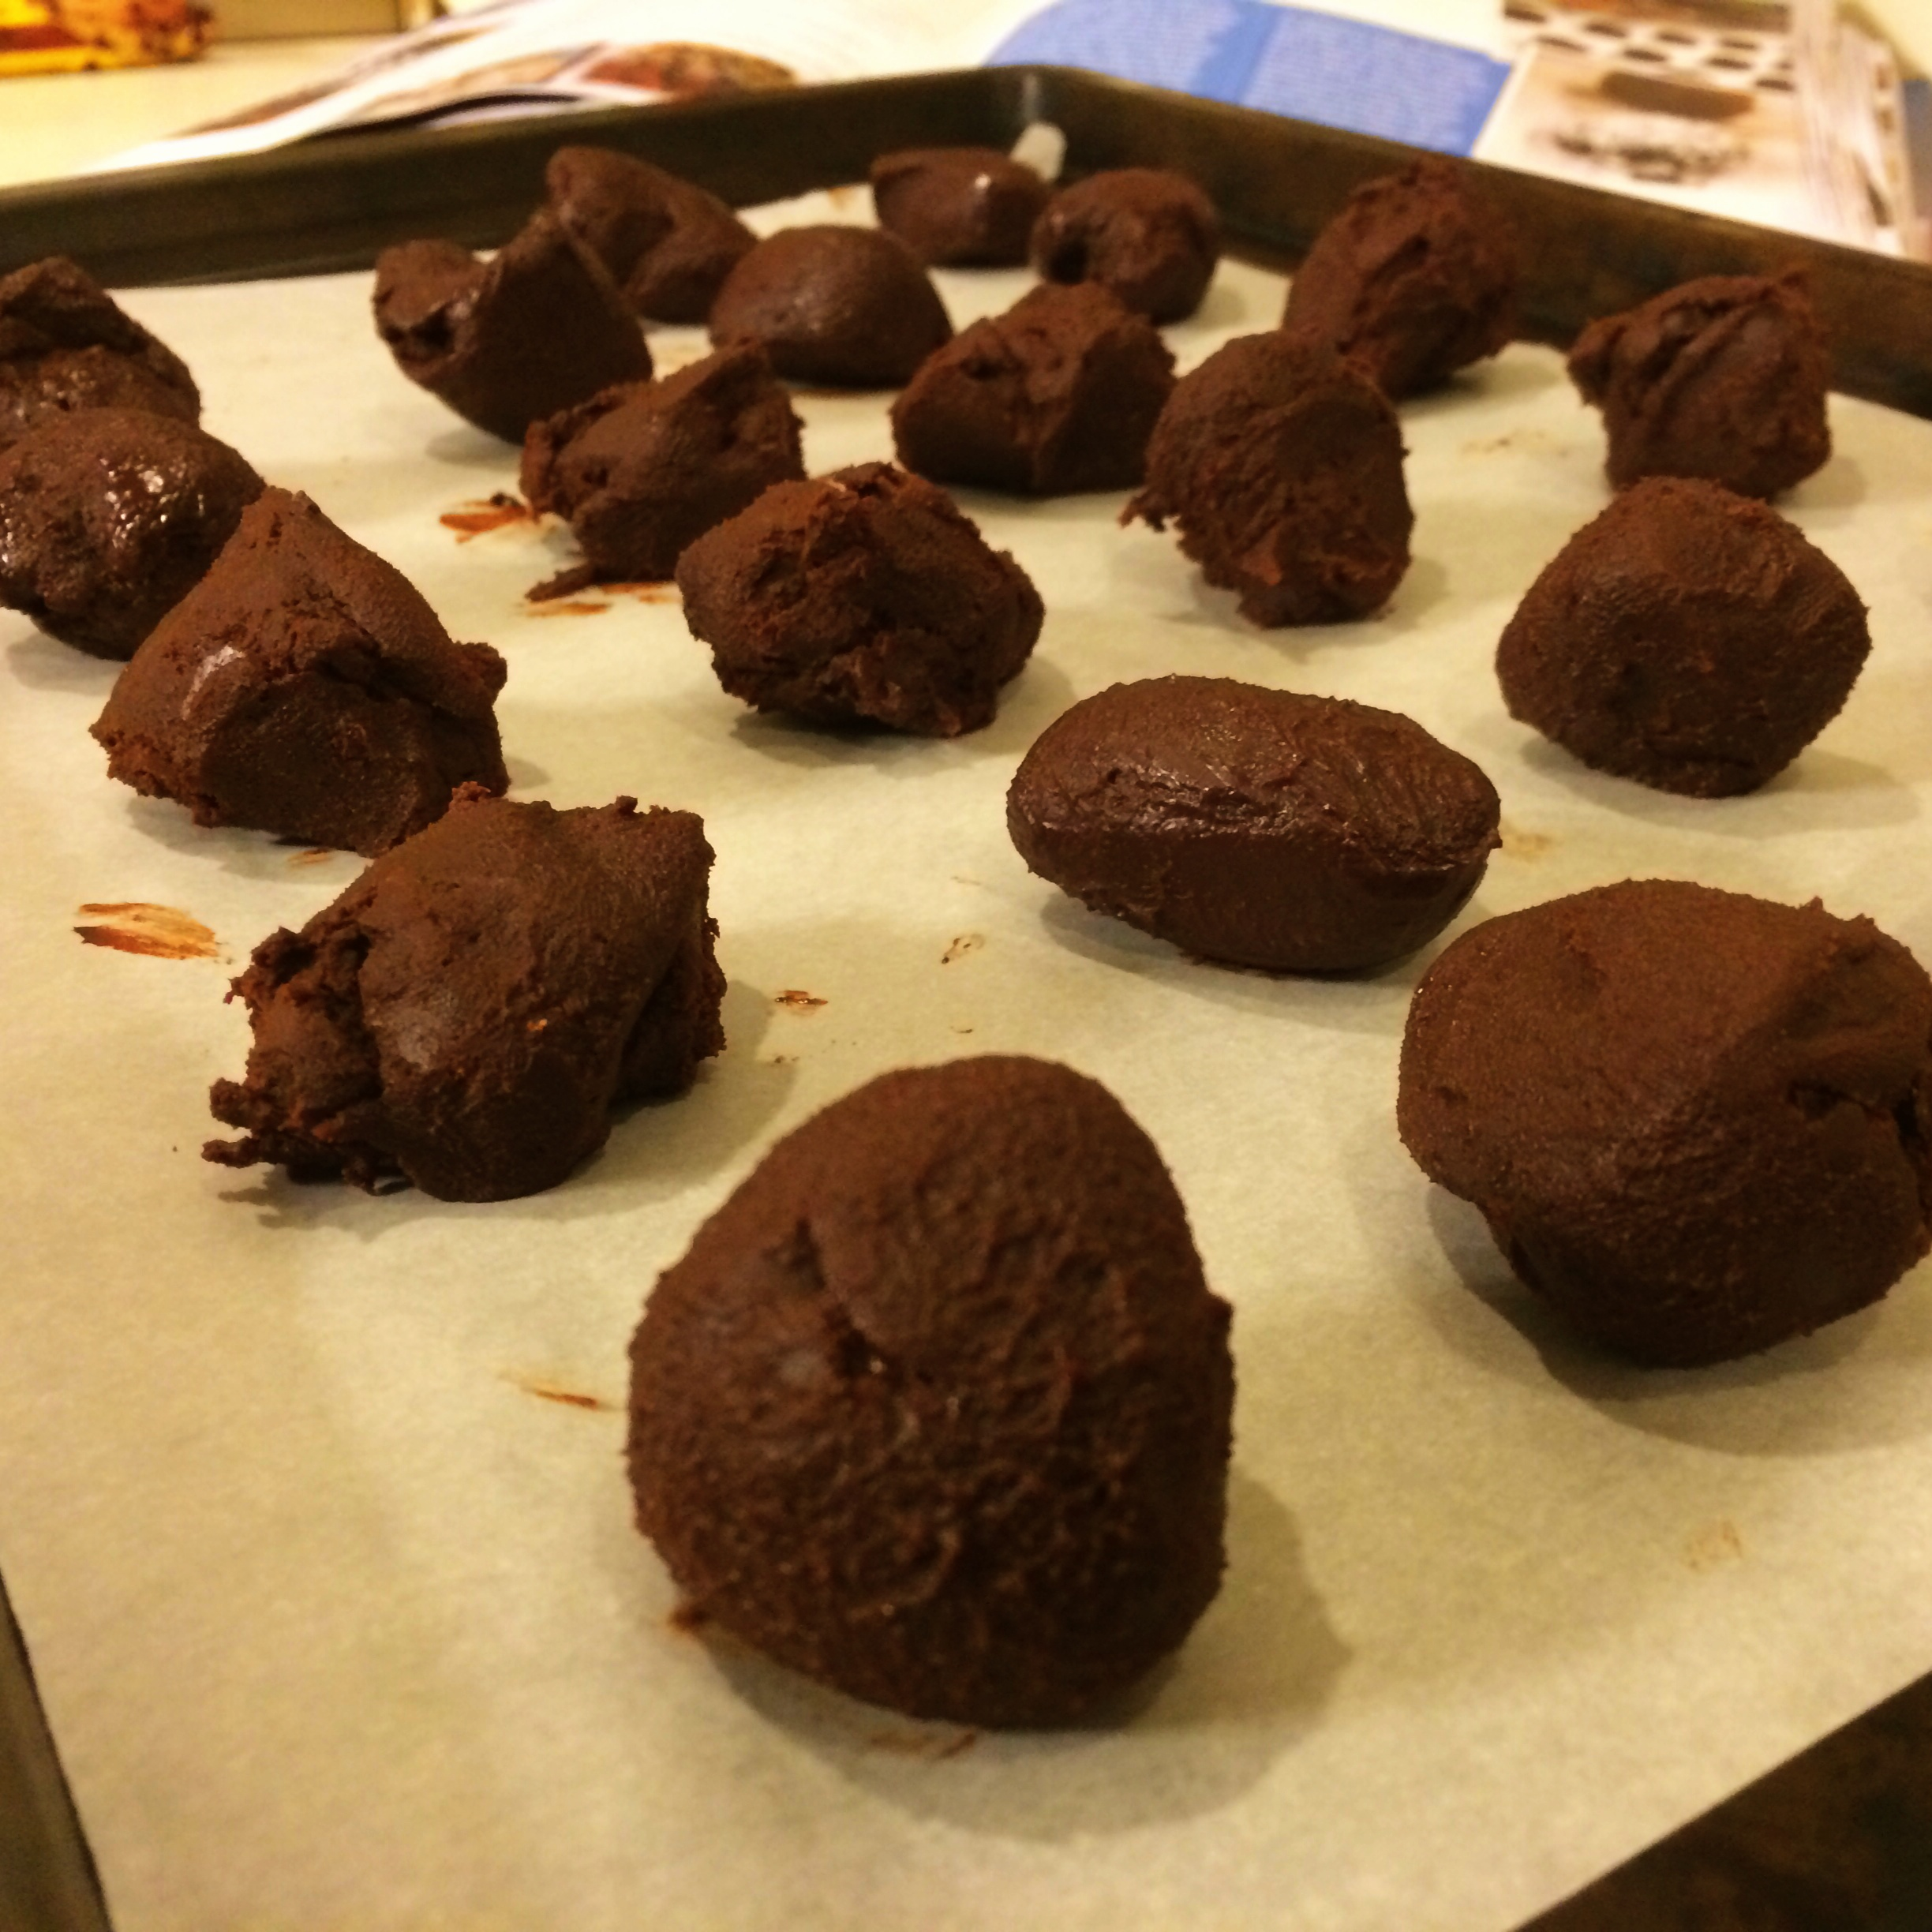 Rolled Good Eats Chocolate Truffles